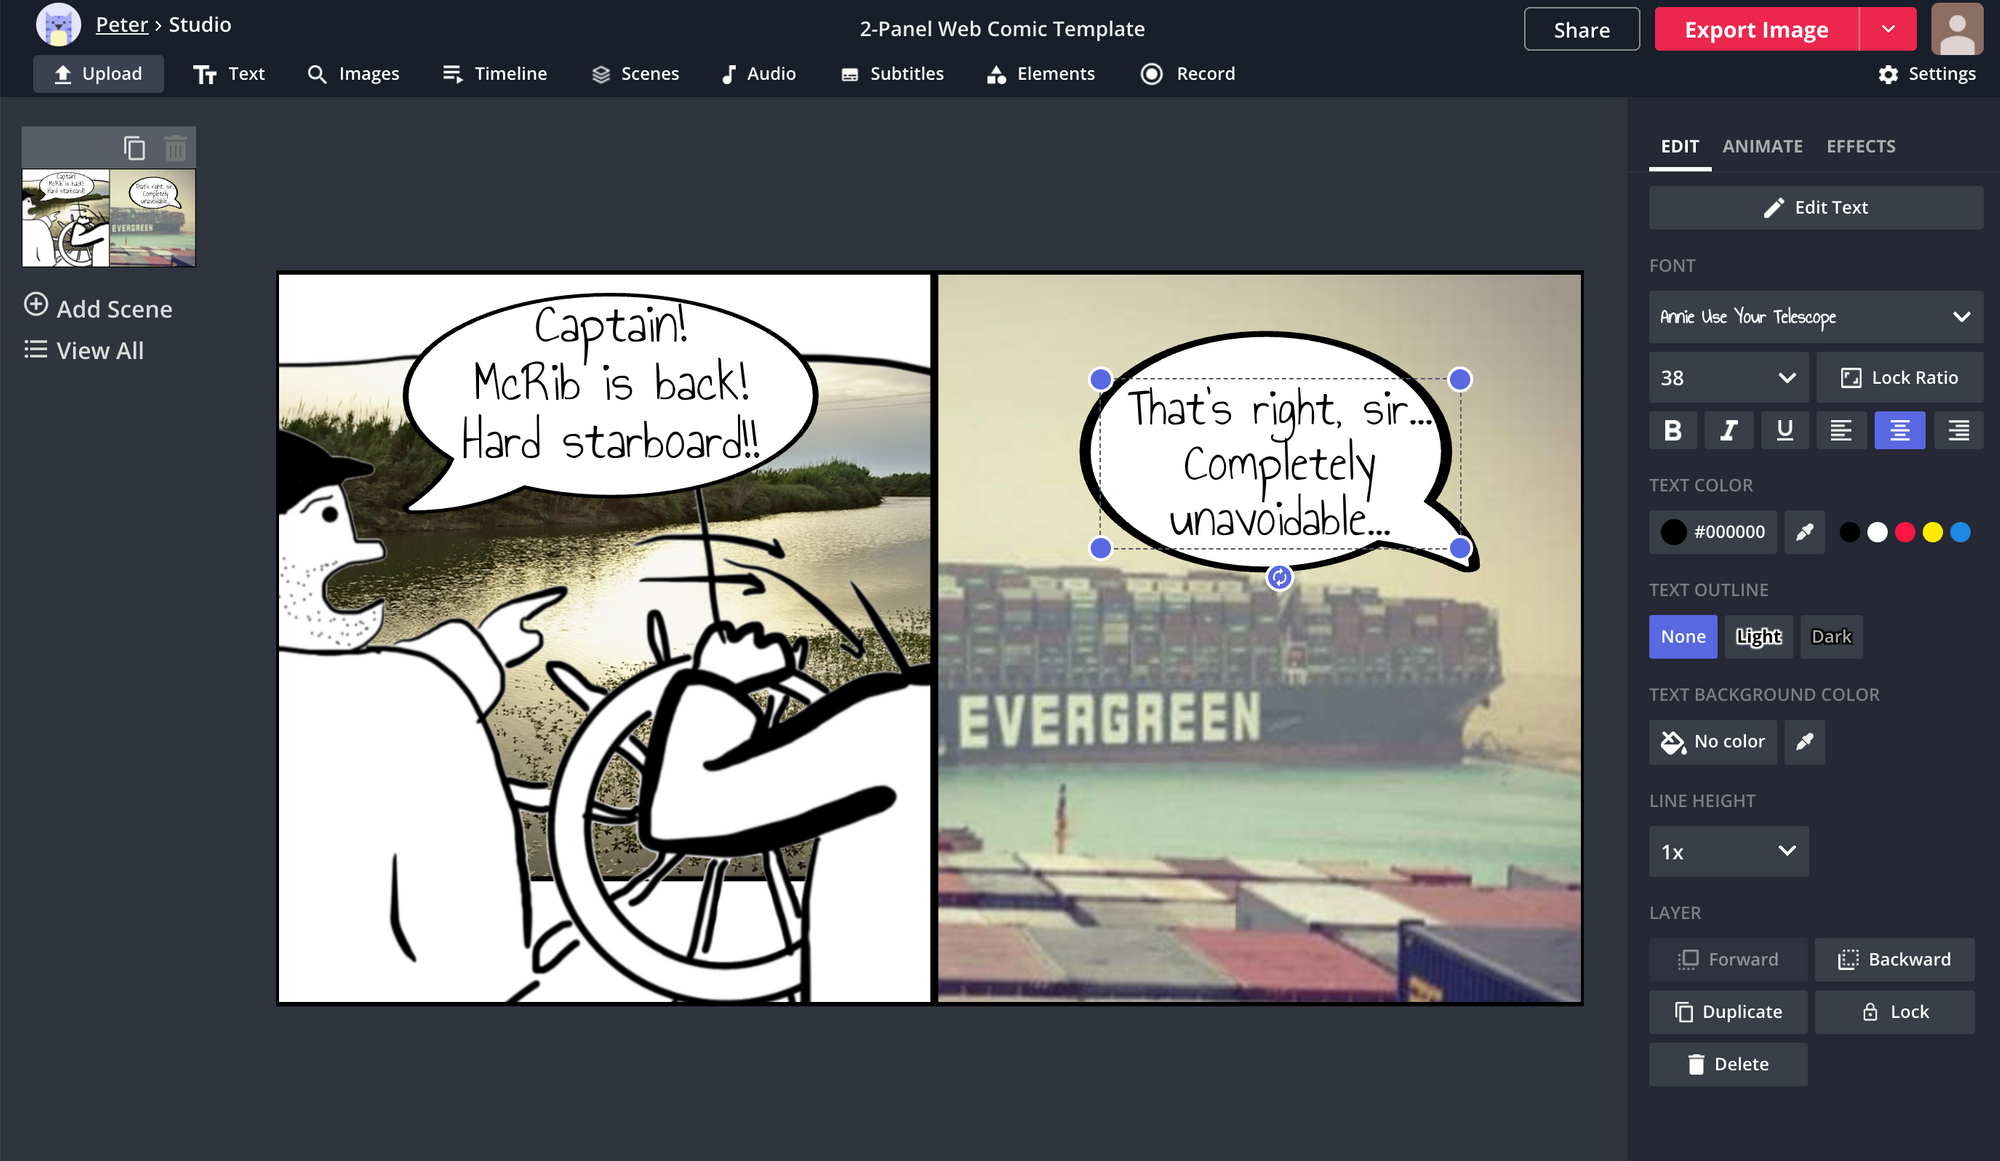 A screenshot showing how to add and edit text to a comic strip in the Kapwing Studio.